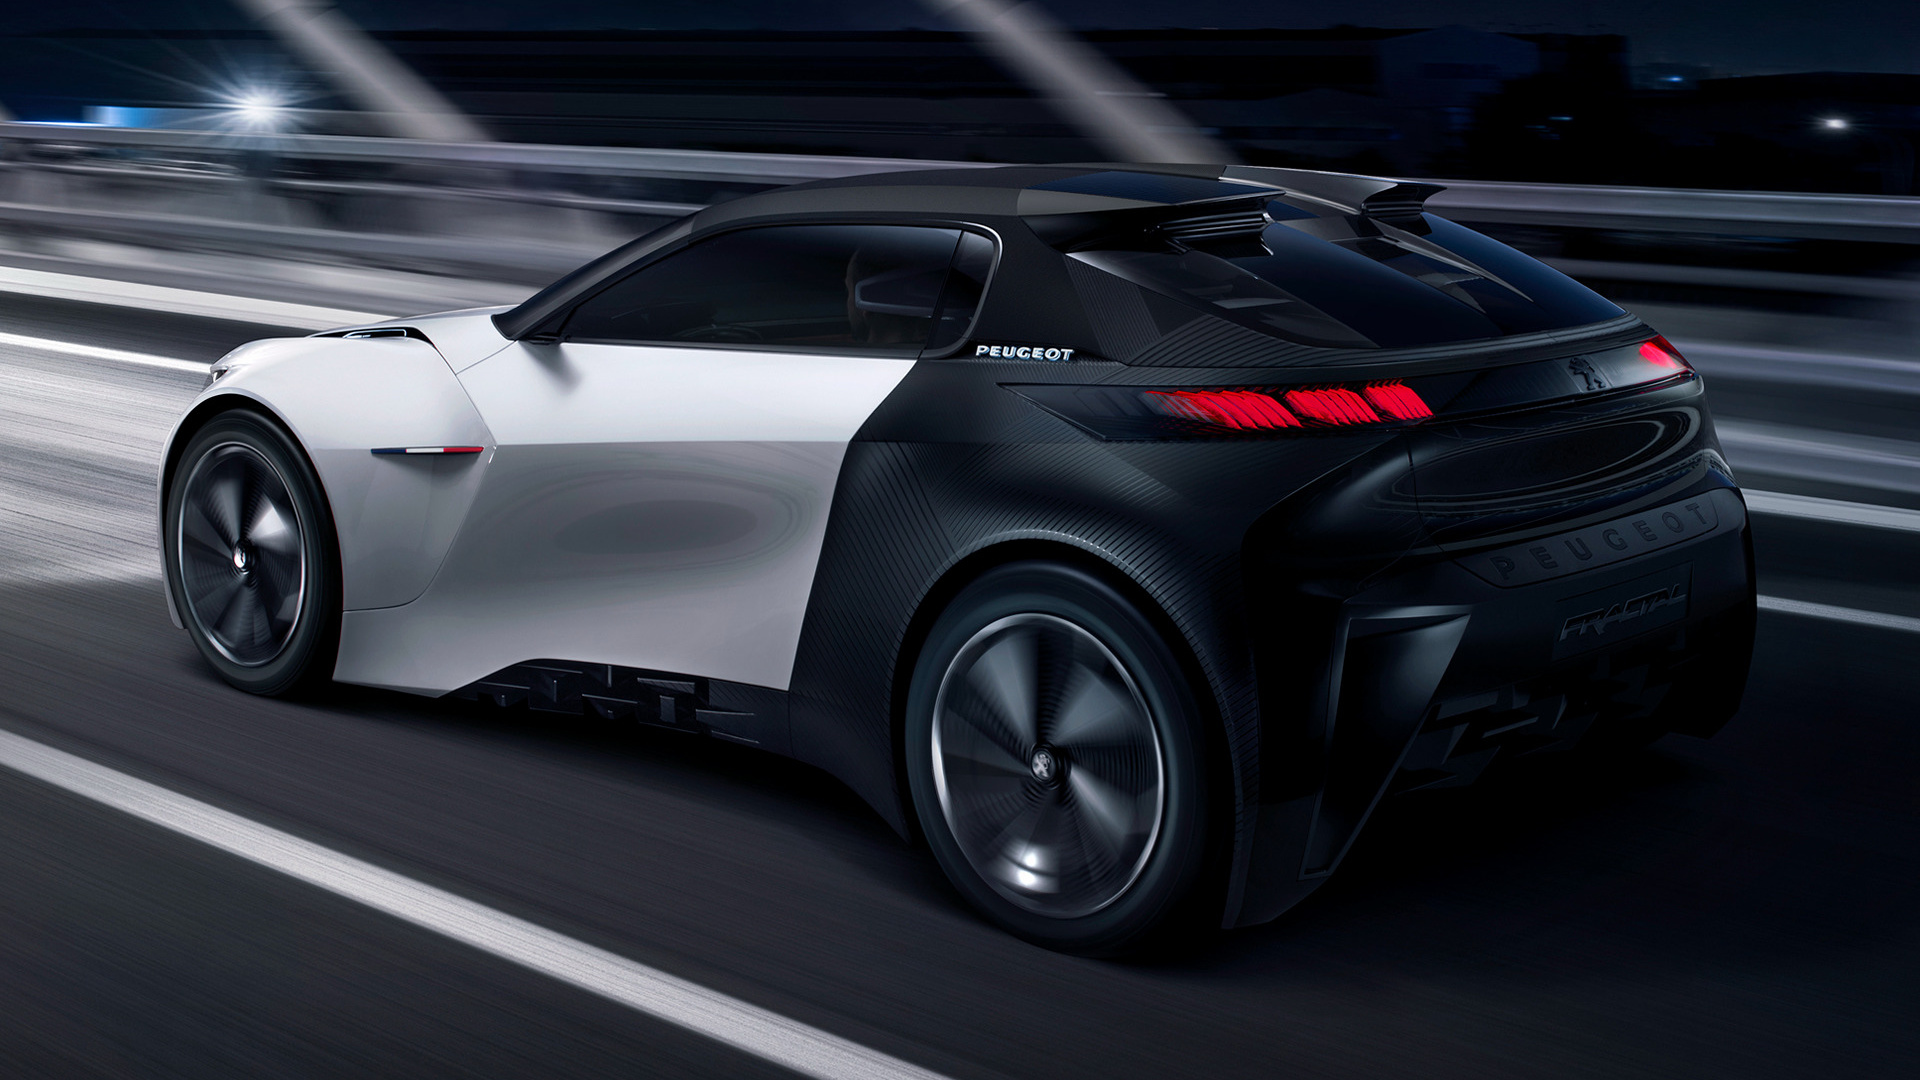 2015 Peugeot Fractal Concept - Wallpapers and HD Images ...